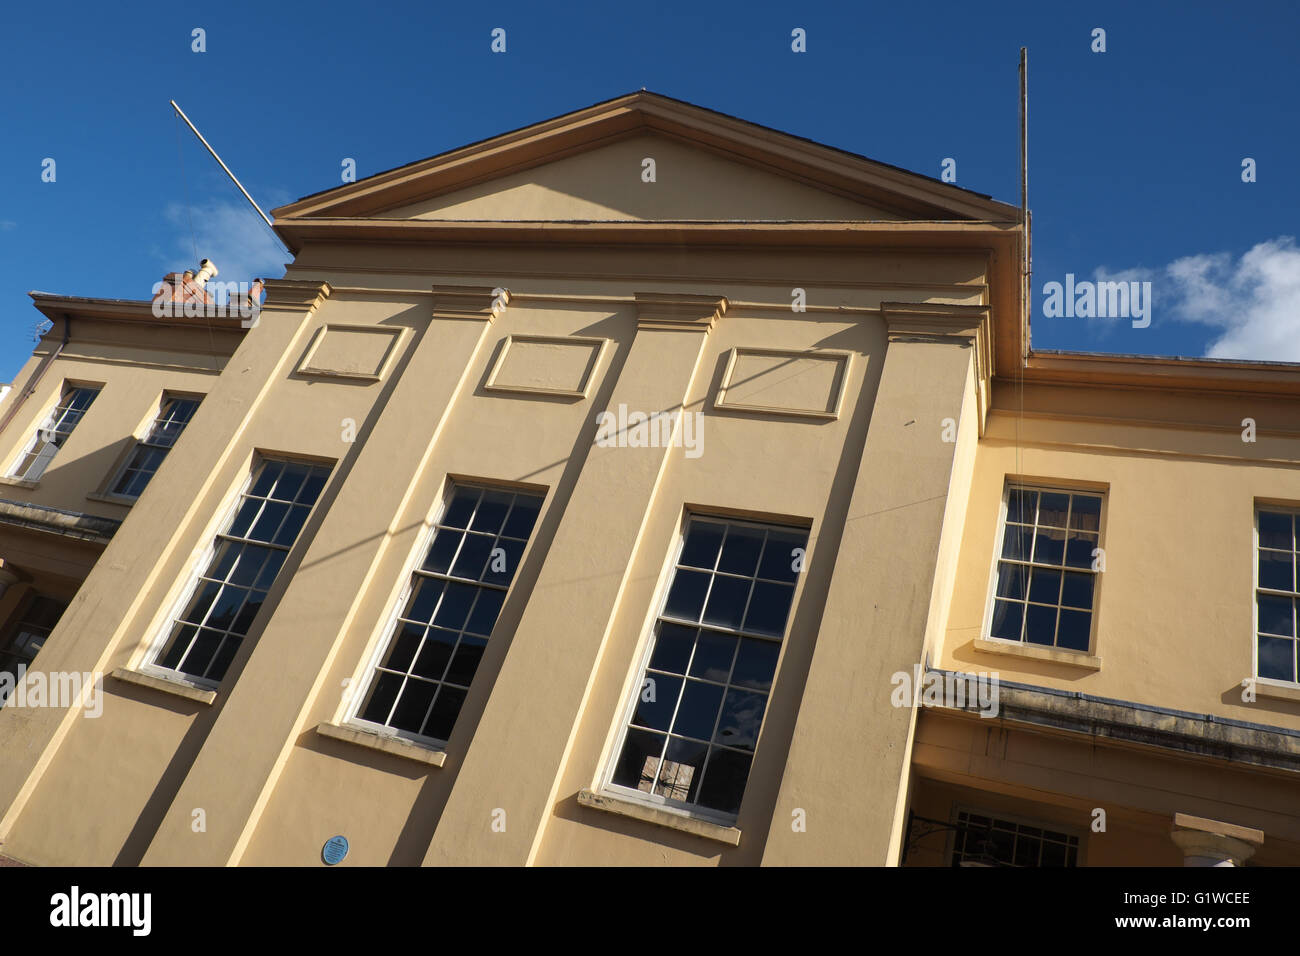 Presteigne Wales the Judge's Lodging building former Shire Hall for Radnorshire opened in 1829 - Stock Image